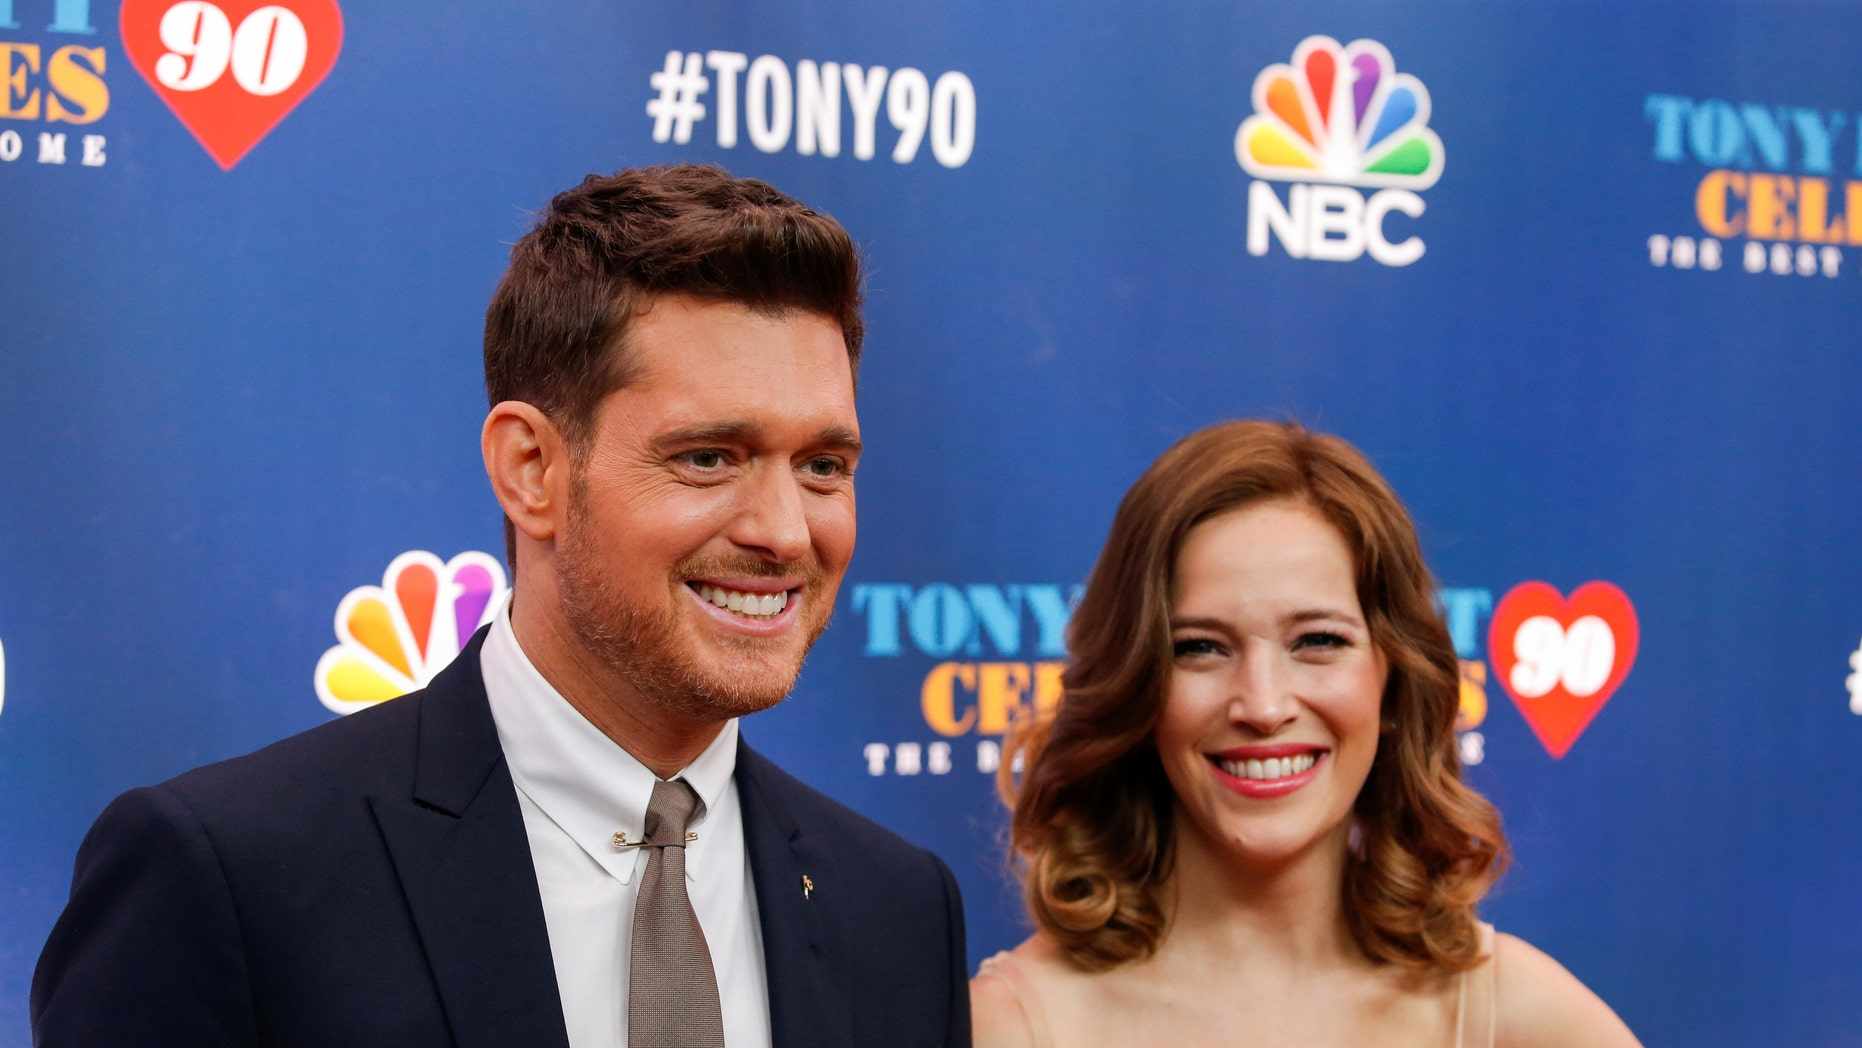 "Singer Michael Buble (L) and Luisana Lopilato walk on the red carpet for ""Tony Bennett Celebrates 90: The Best Is Yet to Come"" at the legendary Radio City Music Hall in New York, U.S., September 15, 2016."